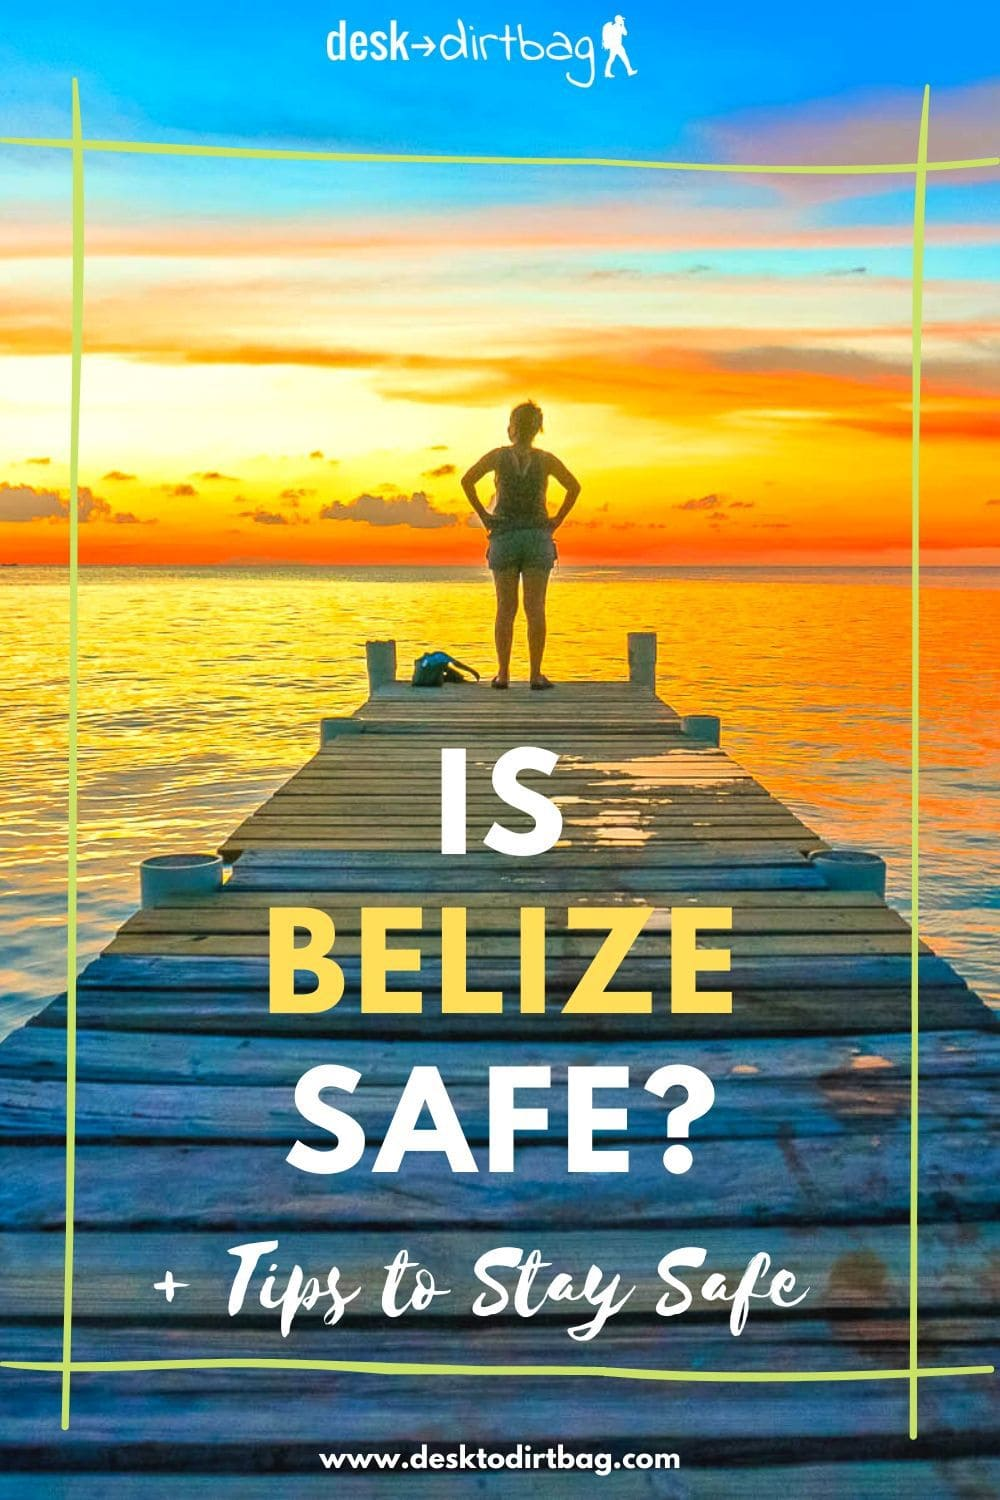 Is Belize Safe? A Detailed Guide to Safety and Security in Belize